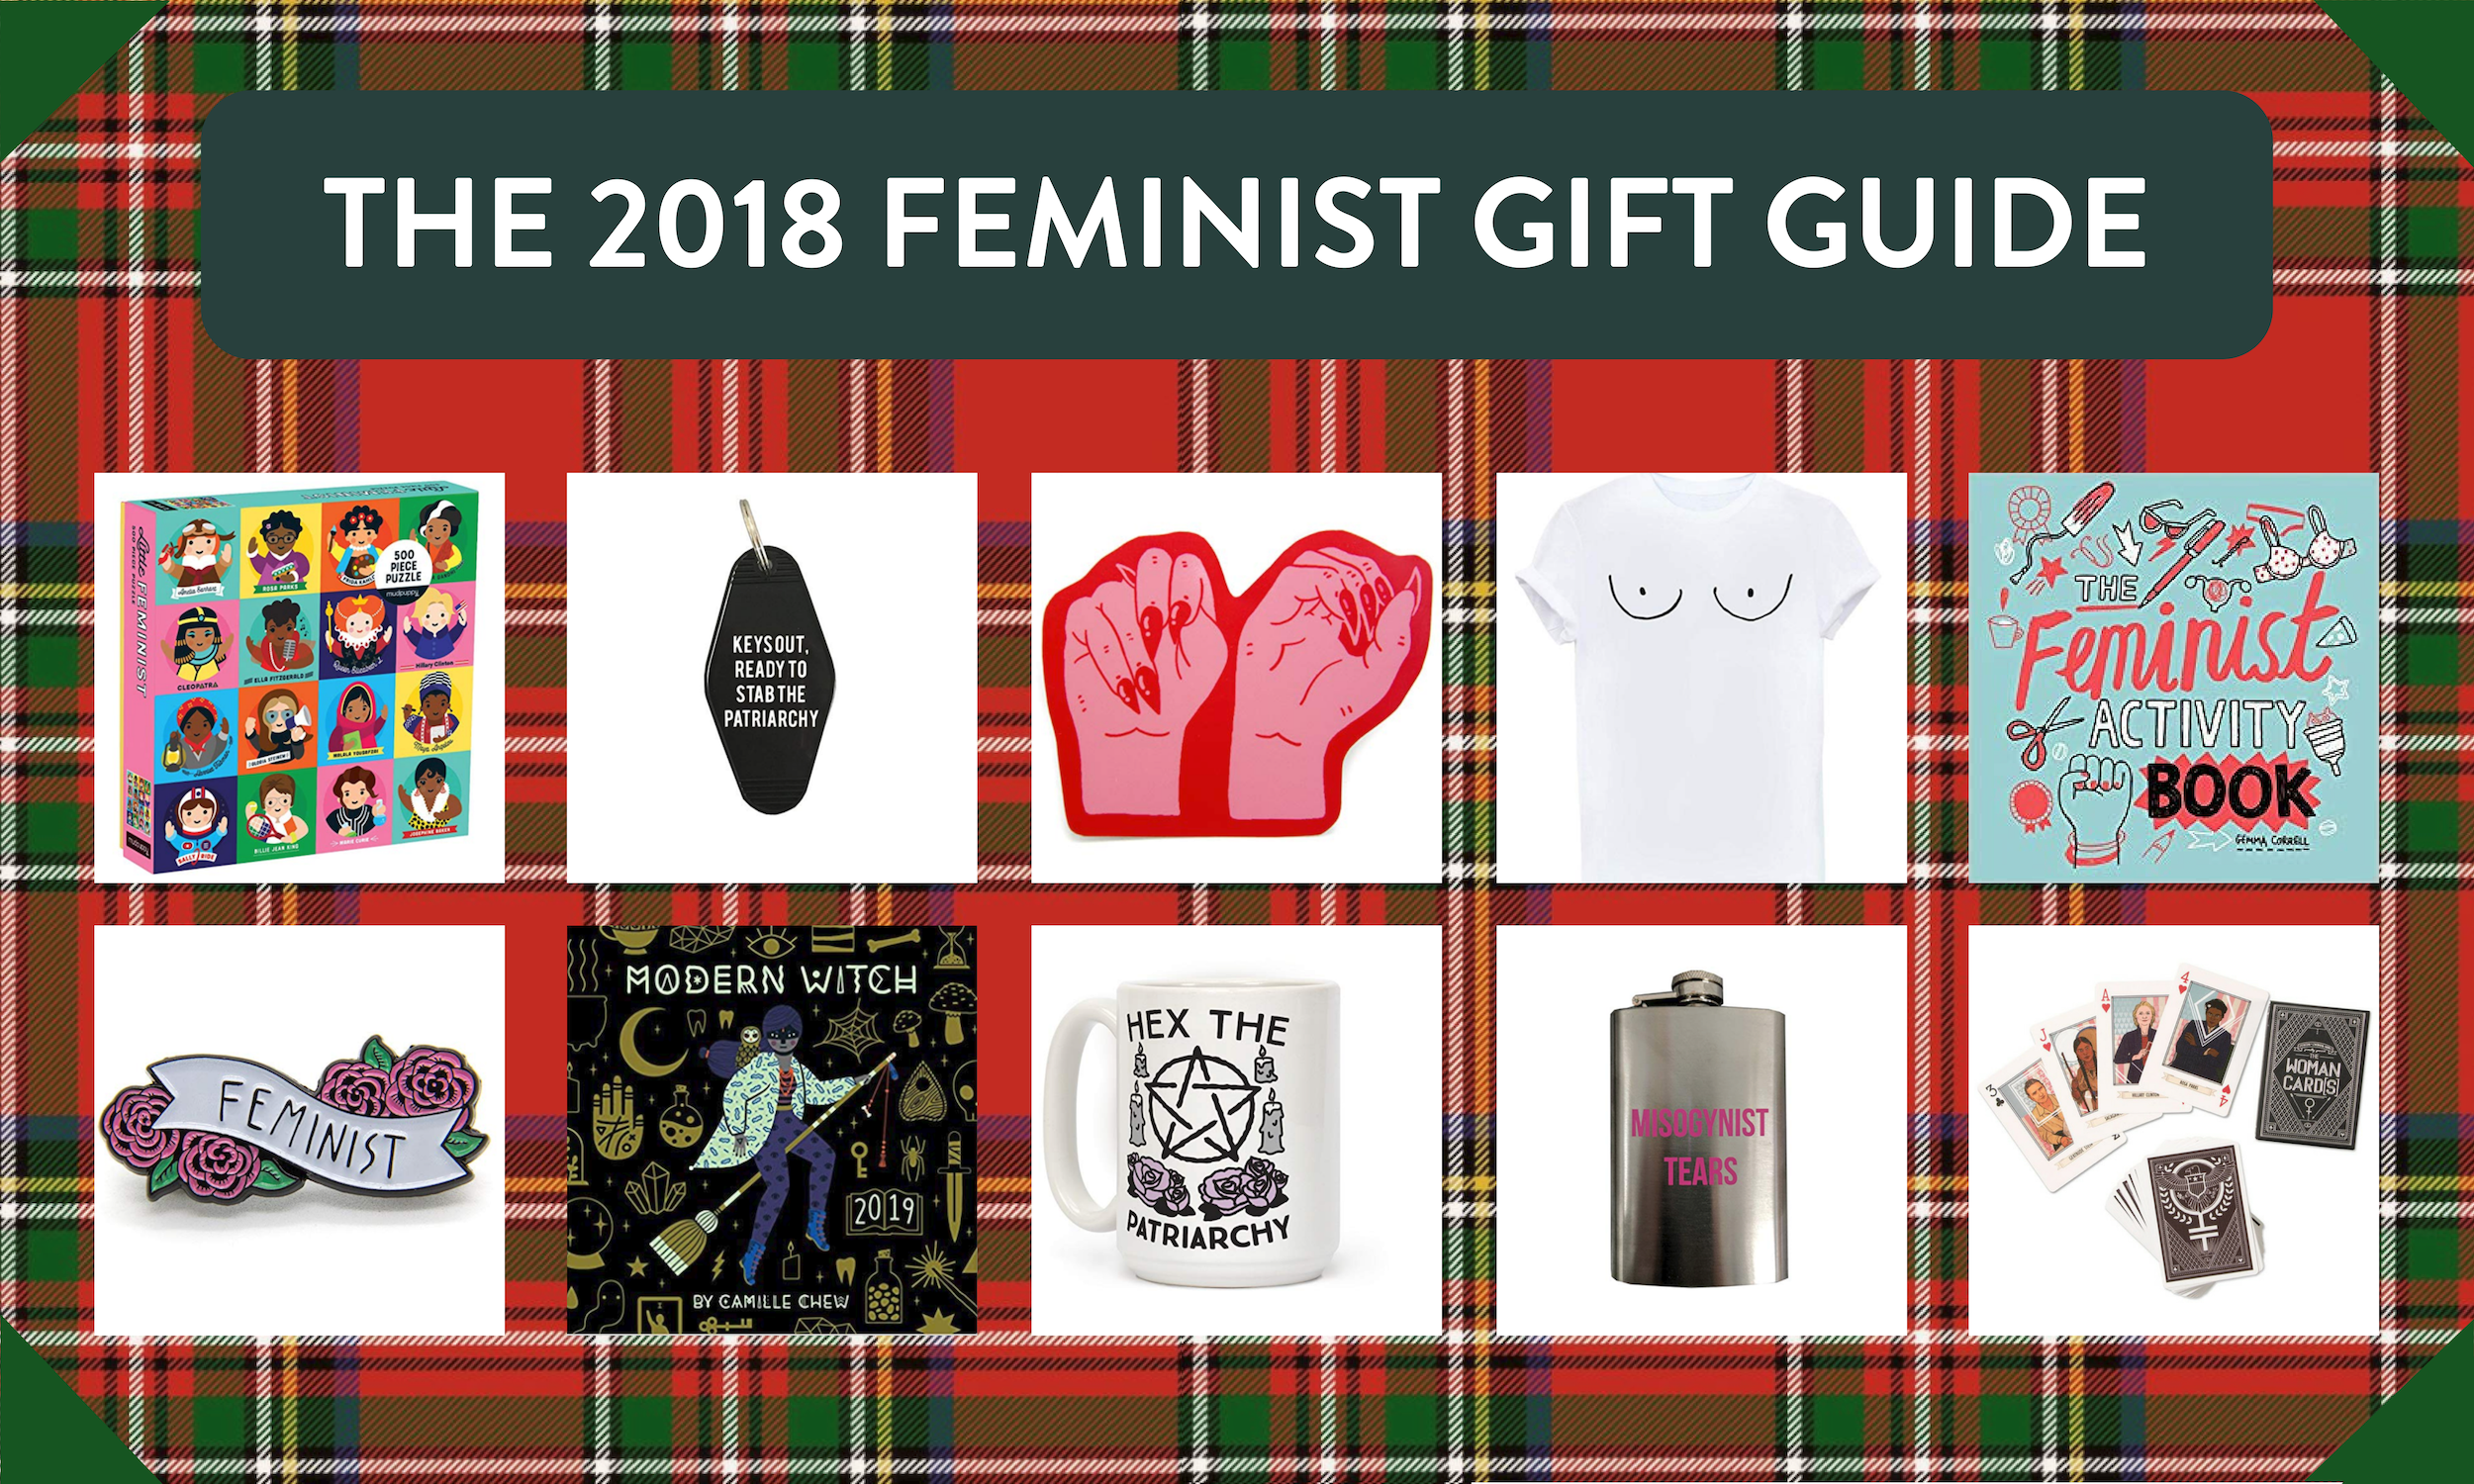 feminist holiday gift ideas, feminist christmas gifts